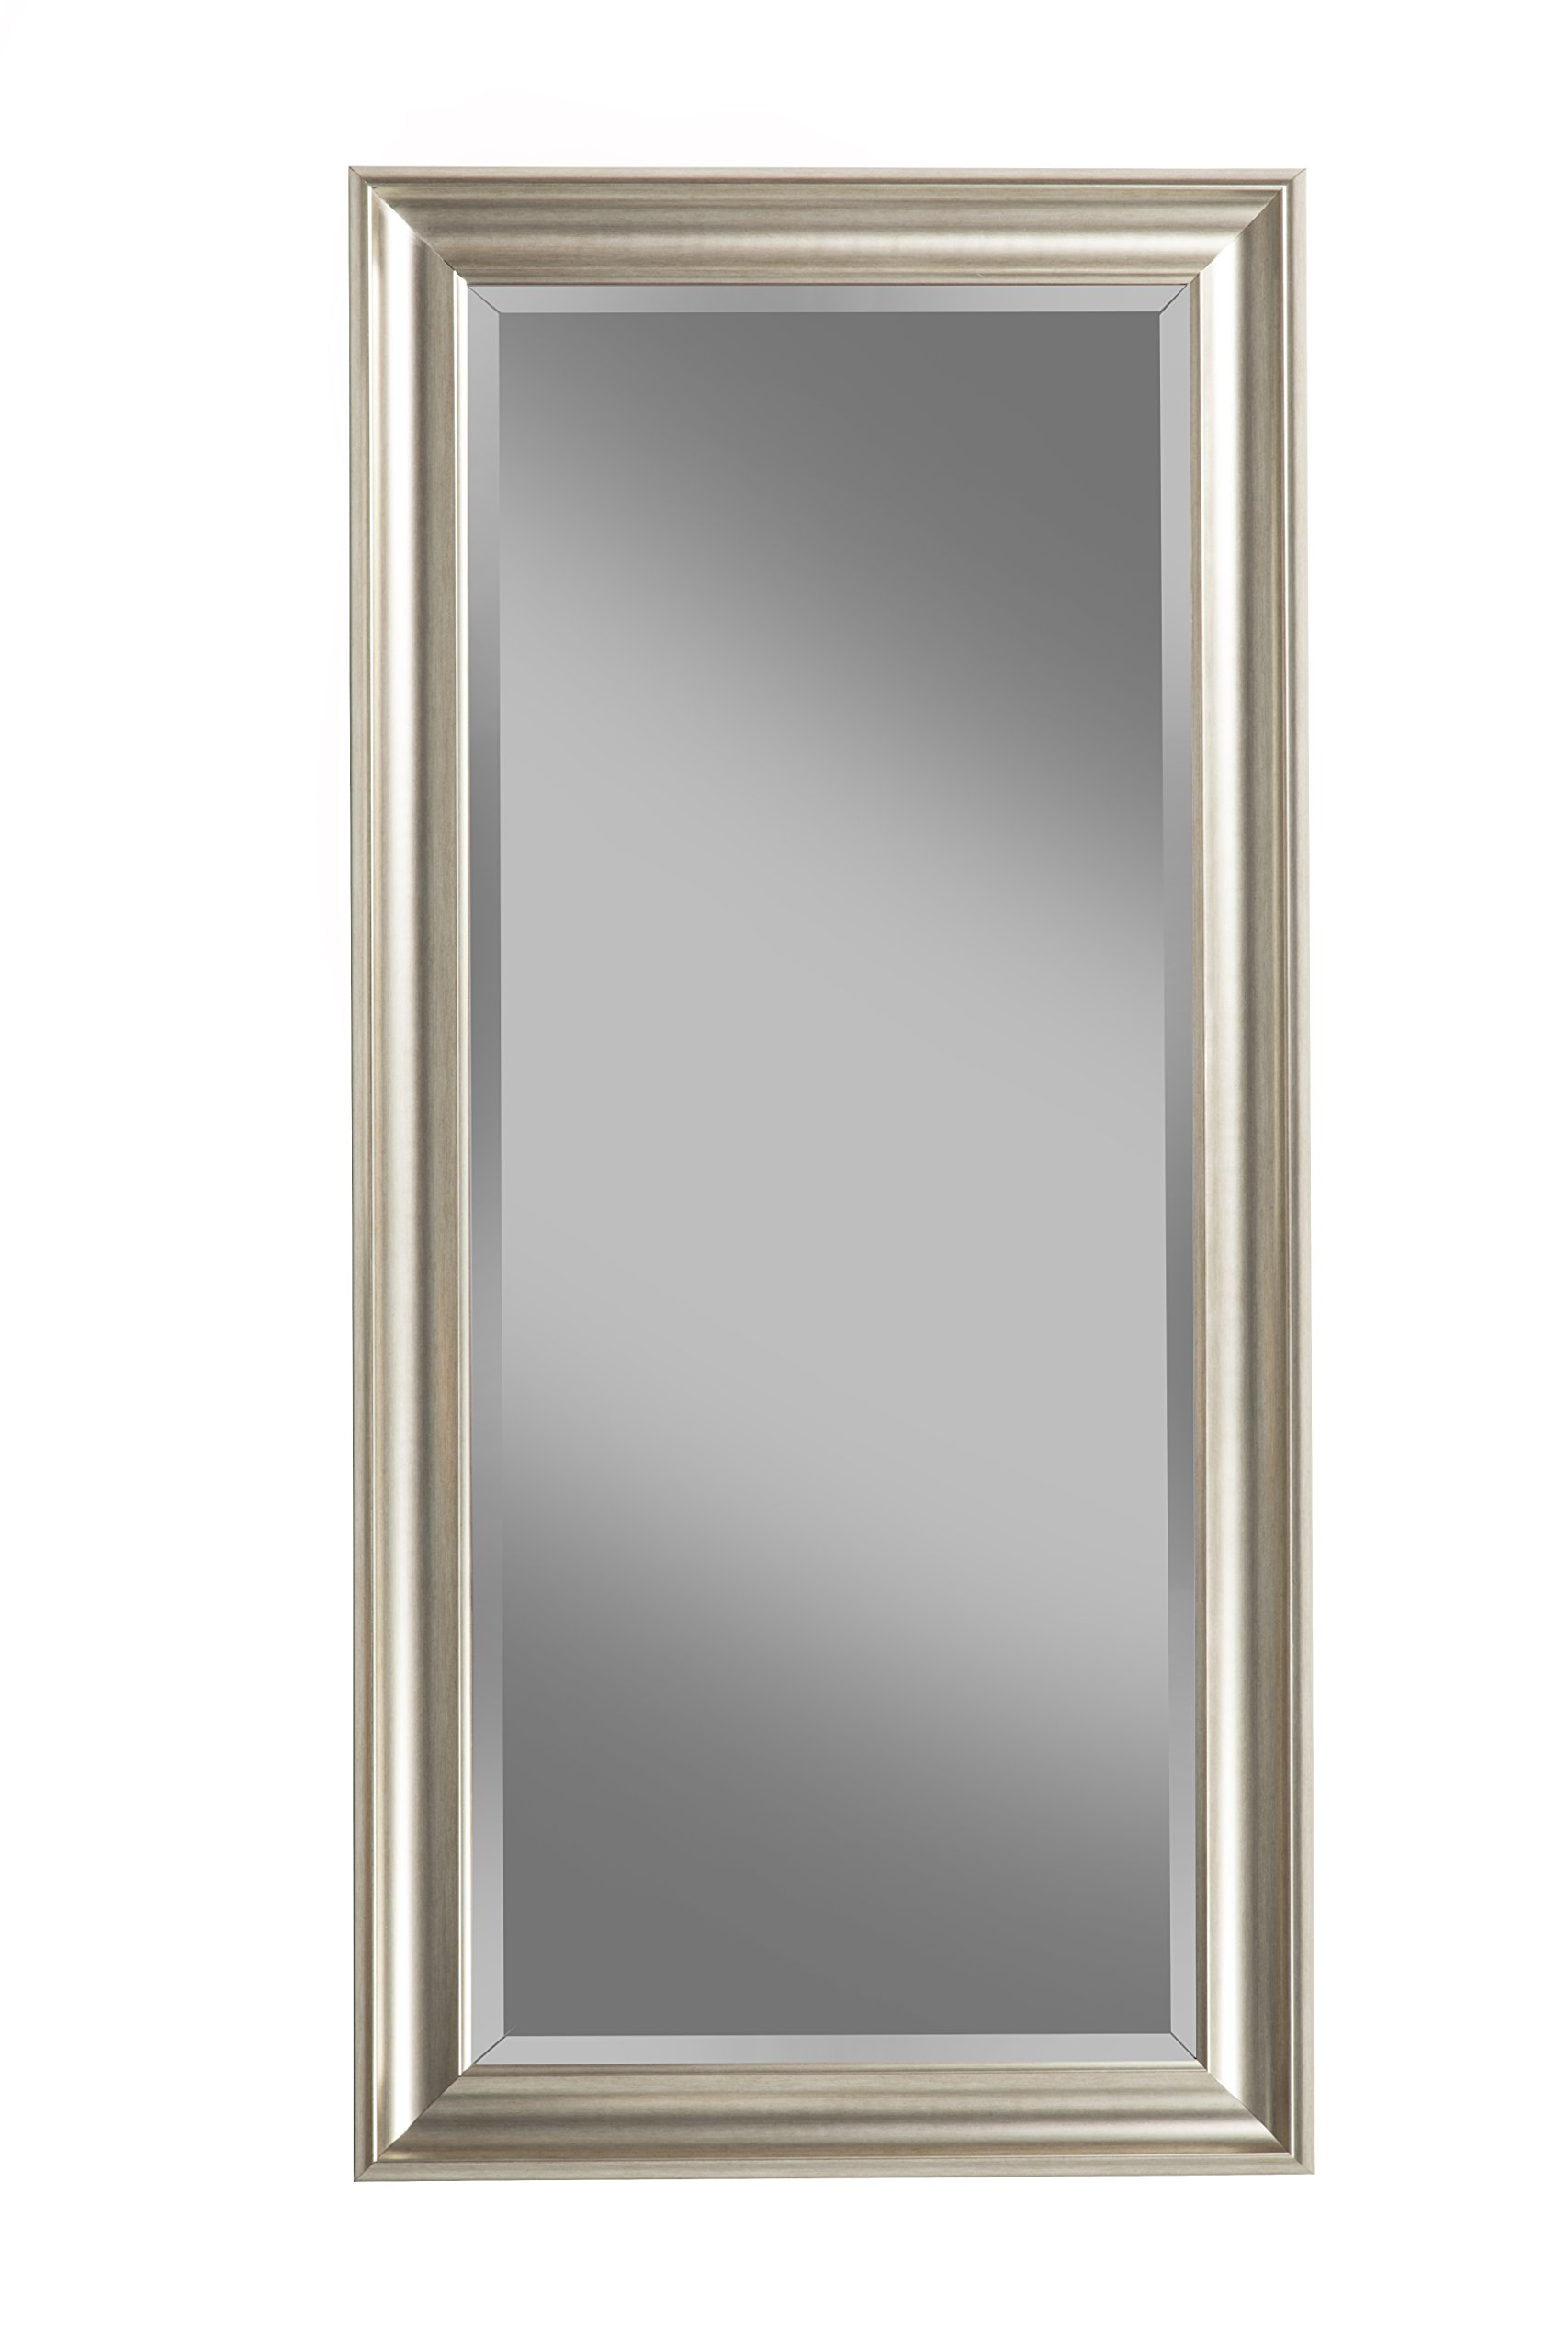 Sandberg Furniture Champagne Silver Full Length Leaner Mirror